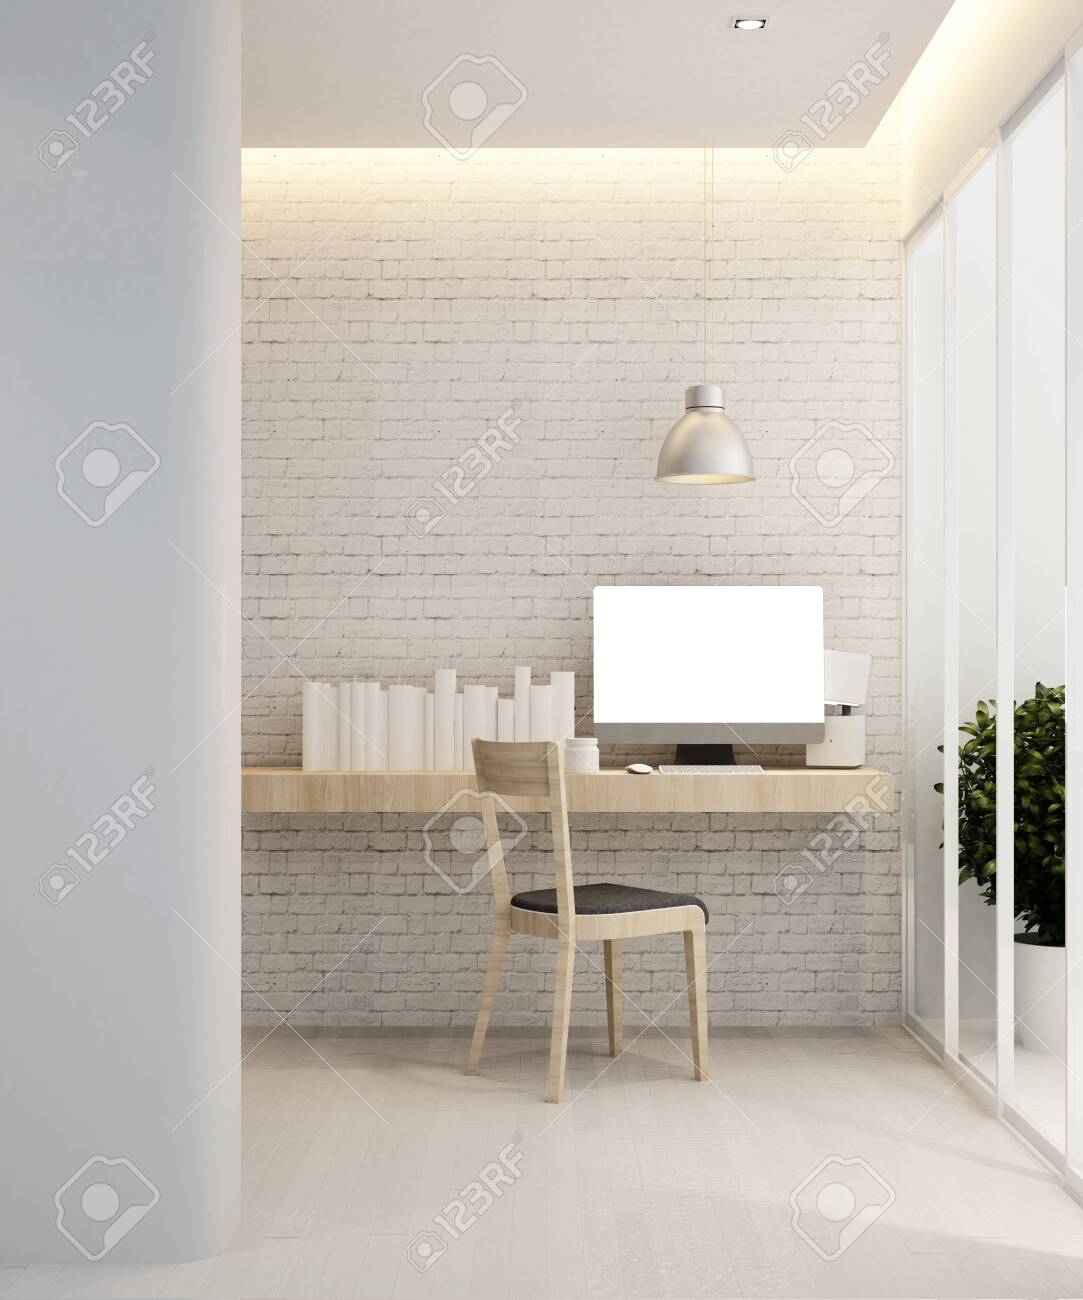 Study Room In Home Or Workplace In Apartment Interior Design